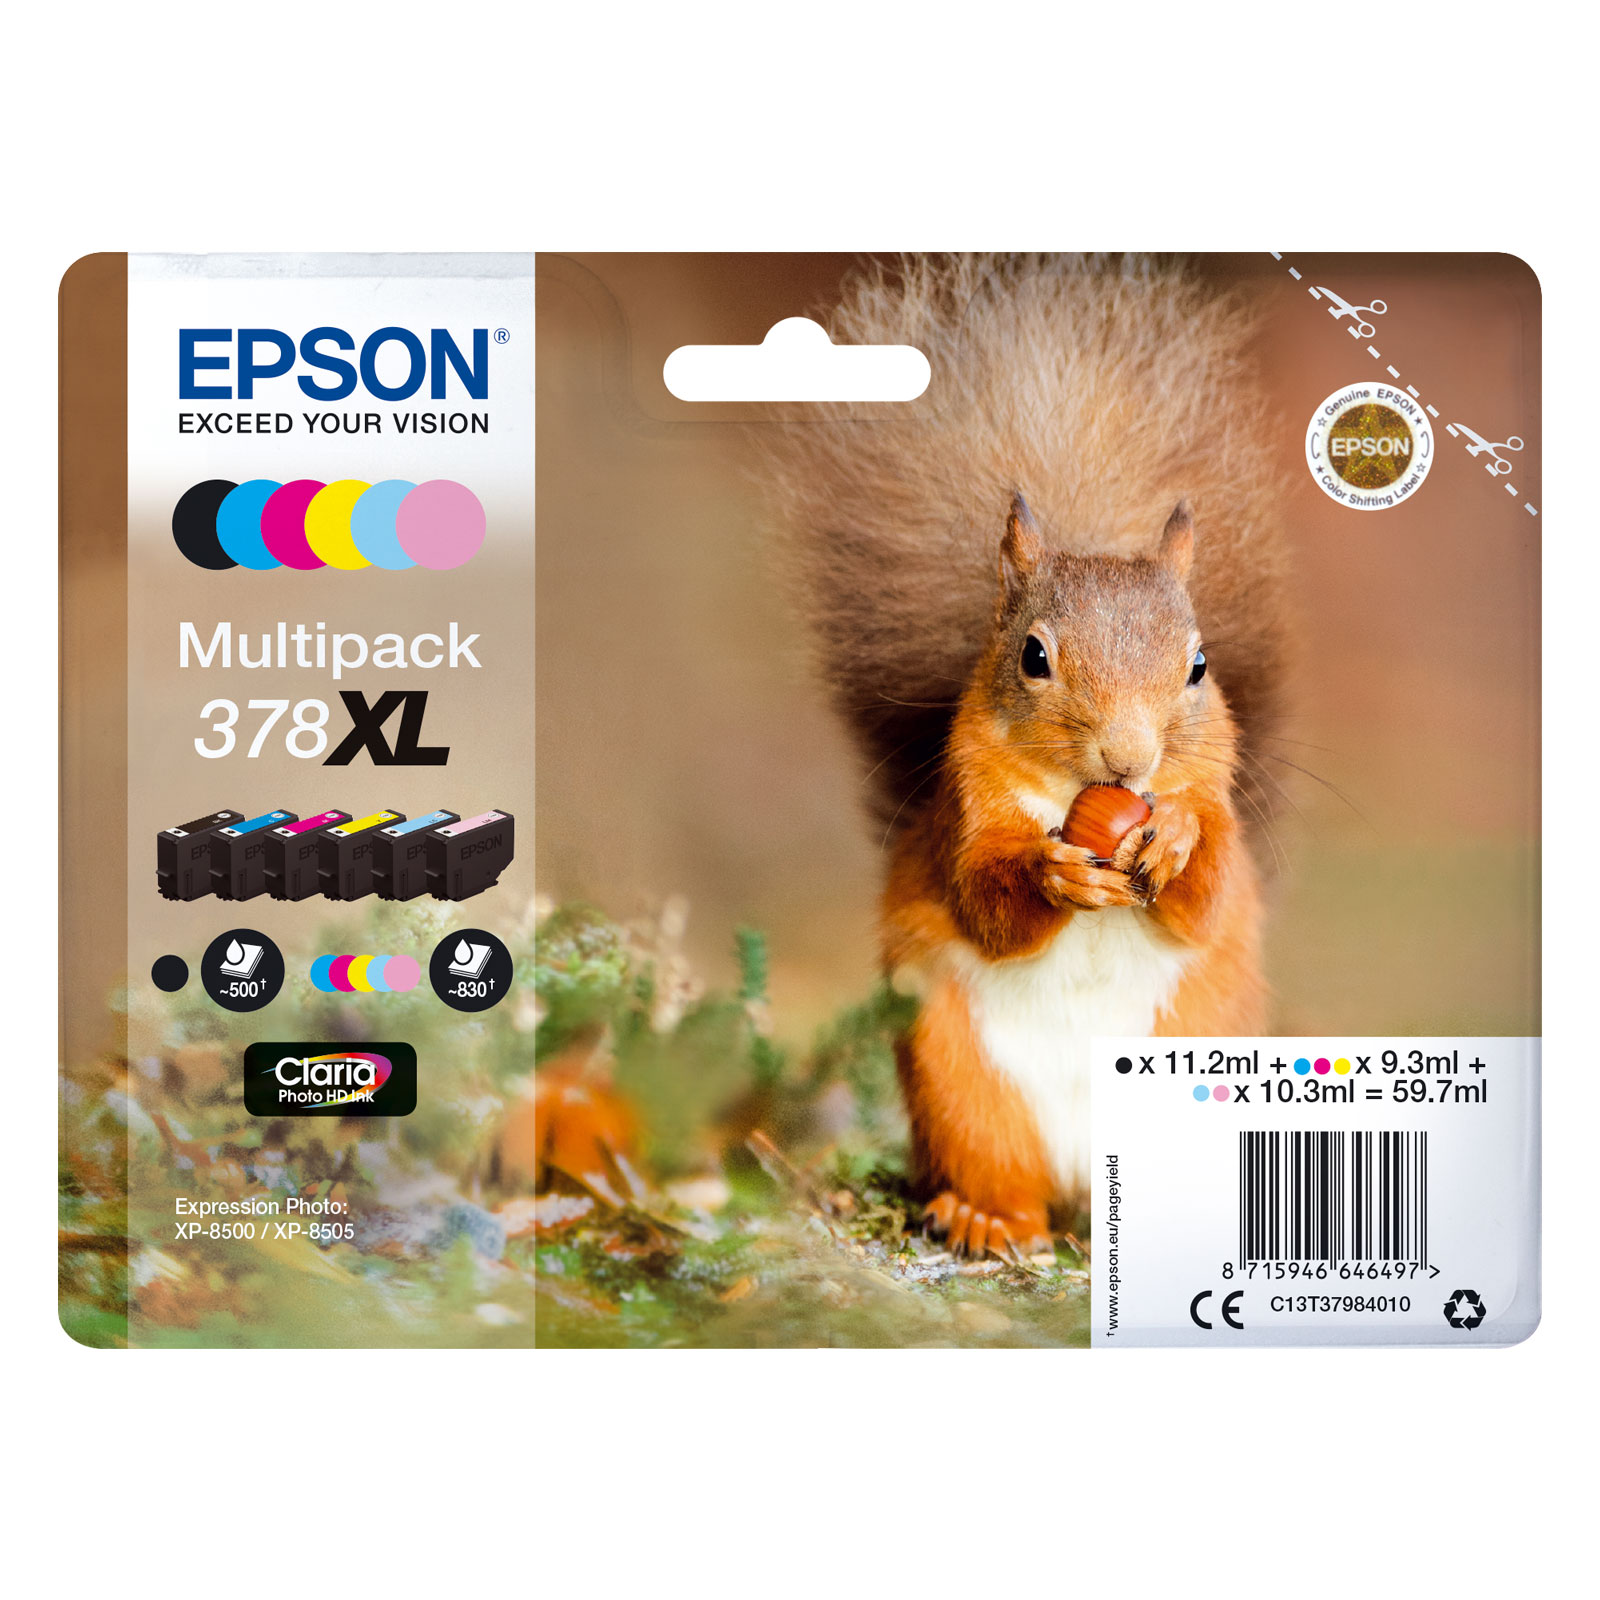 epson ecureuil multipack 378xl cartouche imprimante epson sur. Black Bedroom Furniture Sets. Home Design Ideas